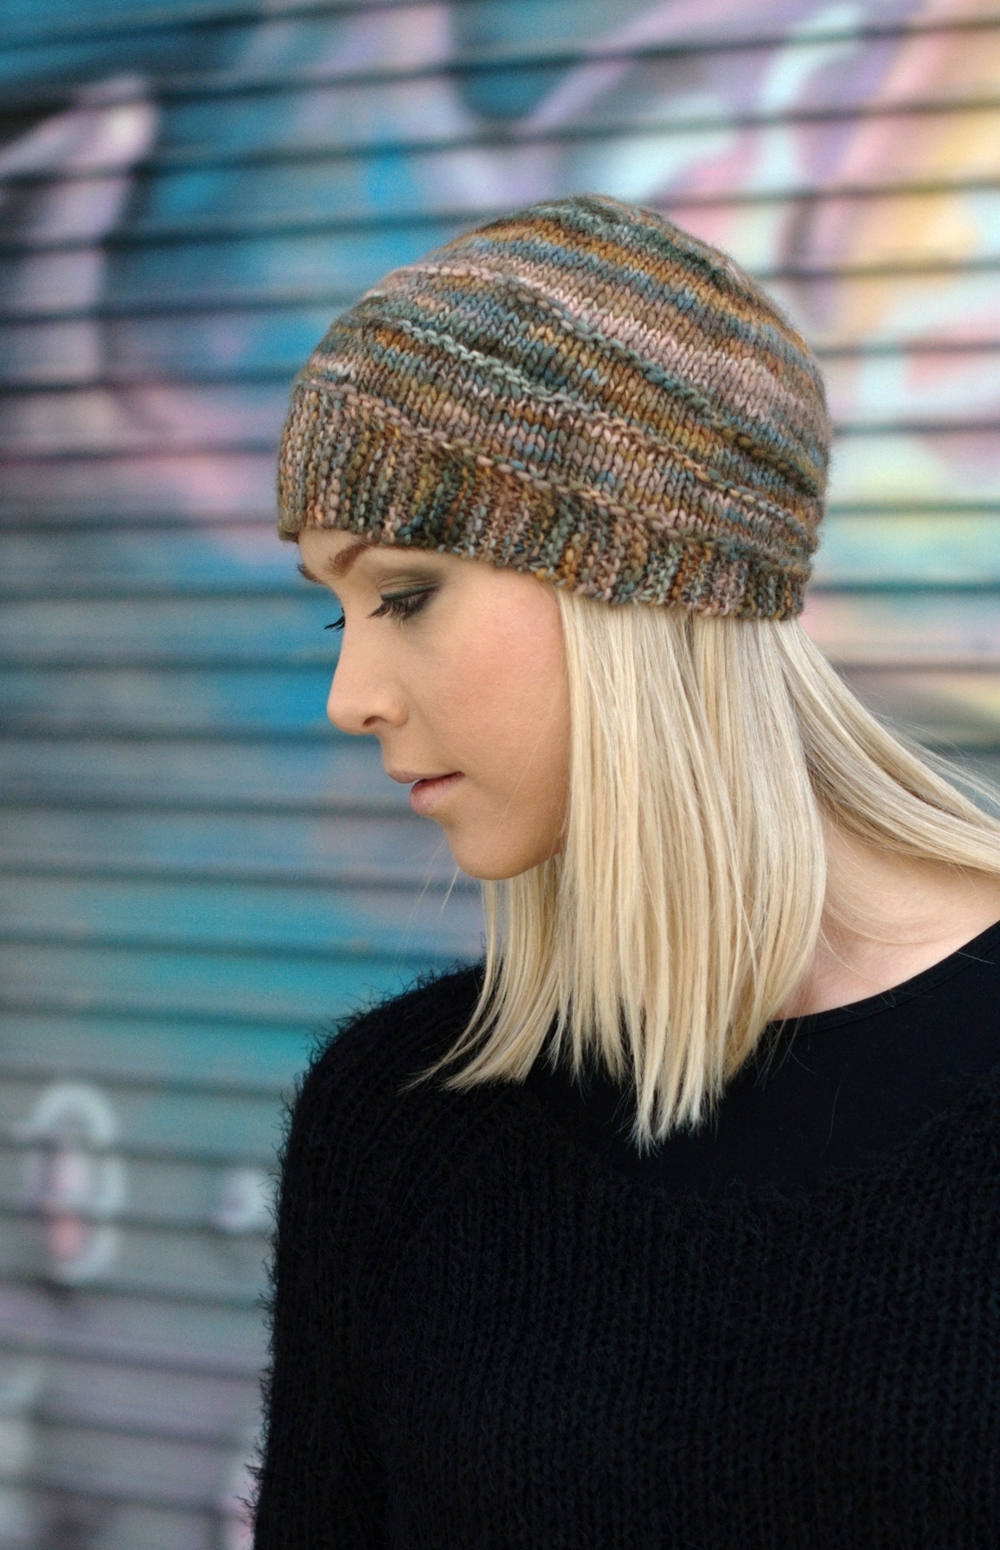 Quoin cloche Hat knitting pattern